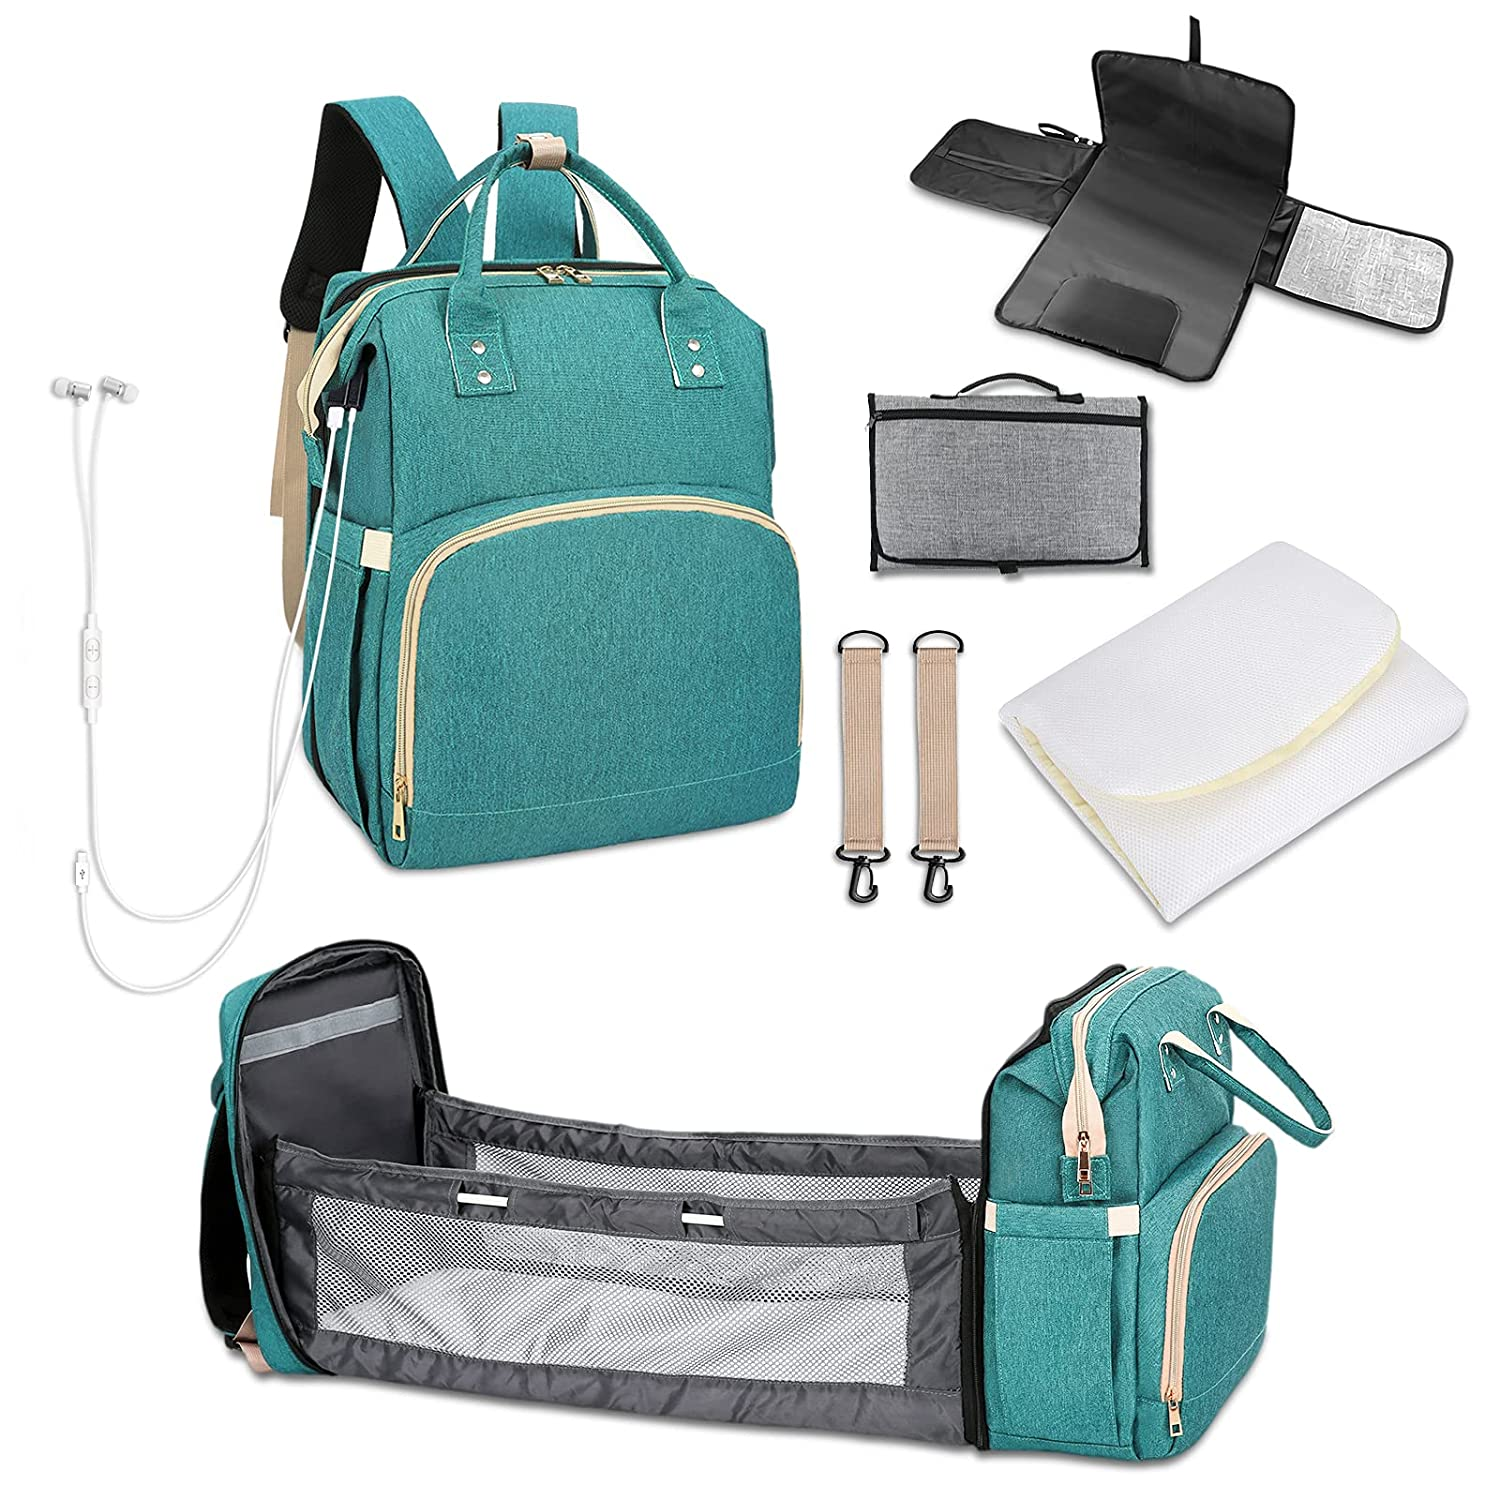 Diaper Bag Backpack with Bassinet Bed Large Mommy Bag Travel Backpack Baby Bag Organizer with Changing Station Pad Bag,Crib,Shade Cloth,Mattress,Stroller Straps,Built-in USB and Headphone Port